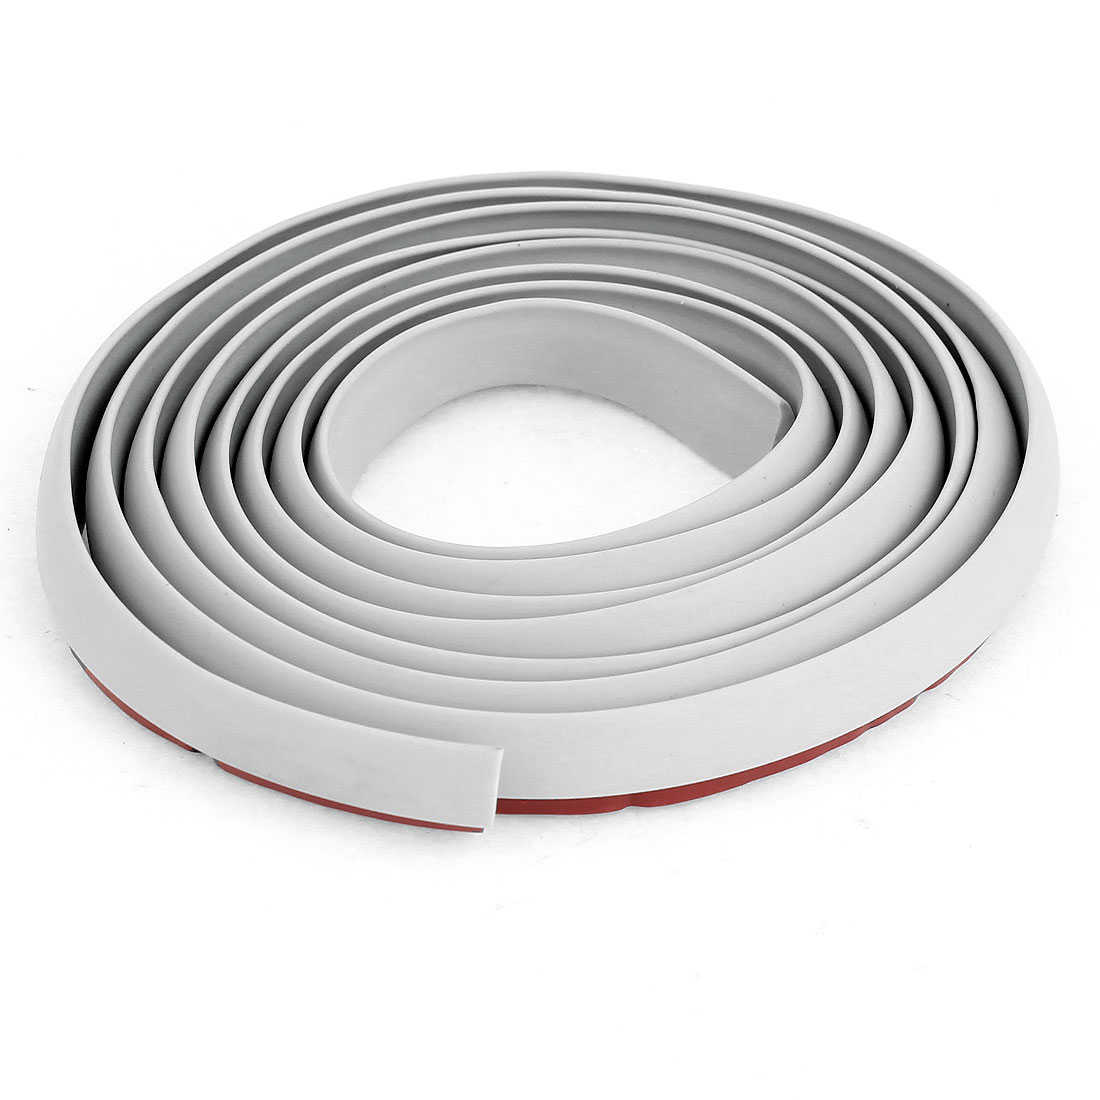 Unique Bargains Car Truck Door Edge Brim Guard Molding Trim Strip Gray 1.7M Length 12mm Width